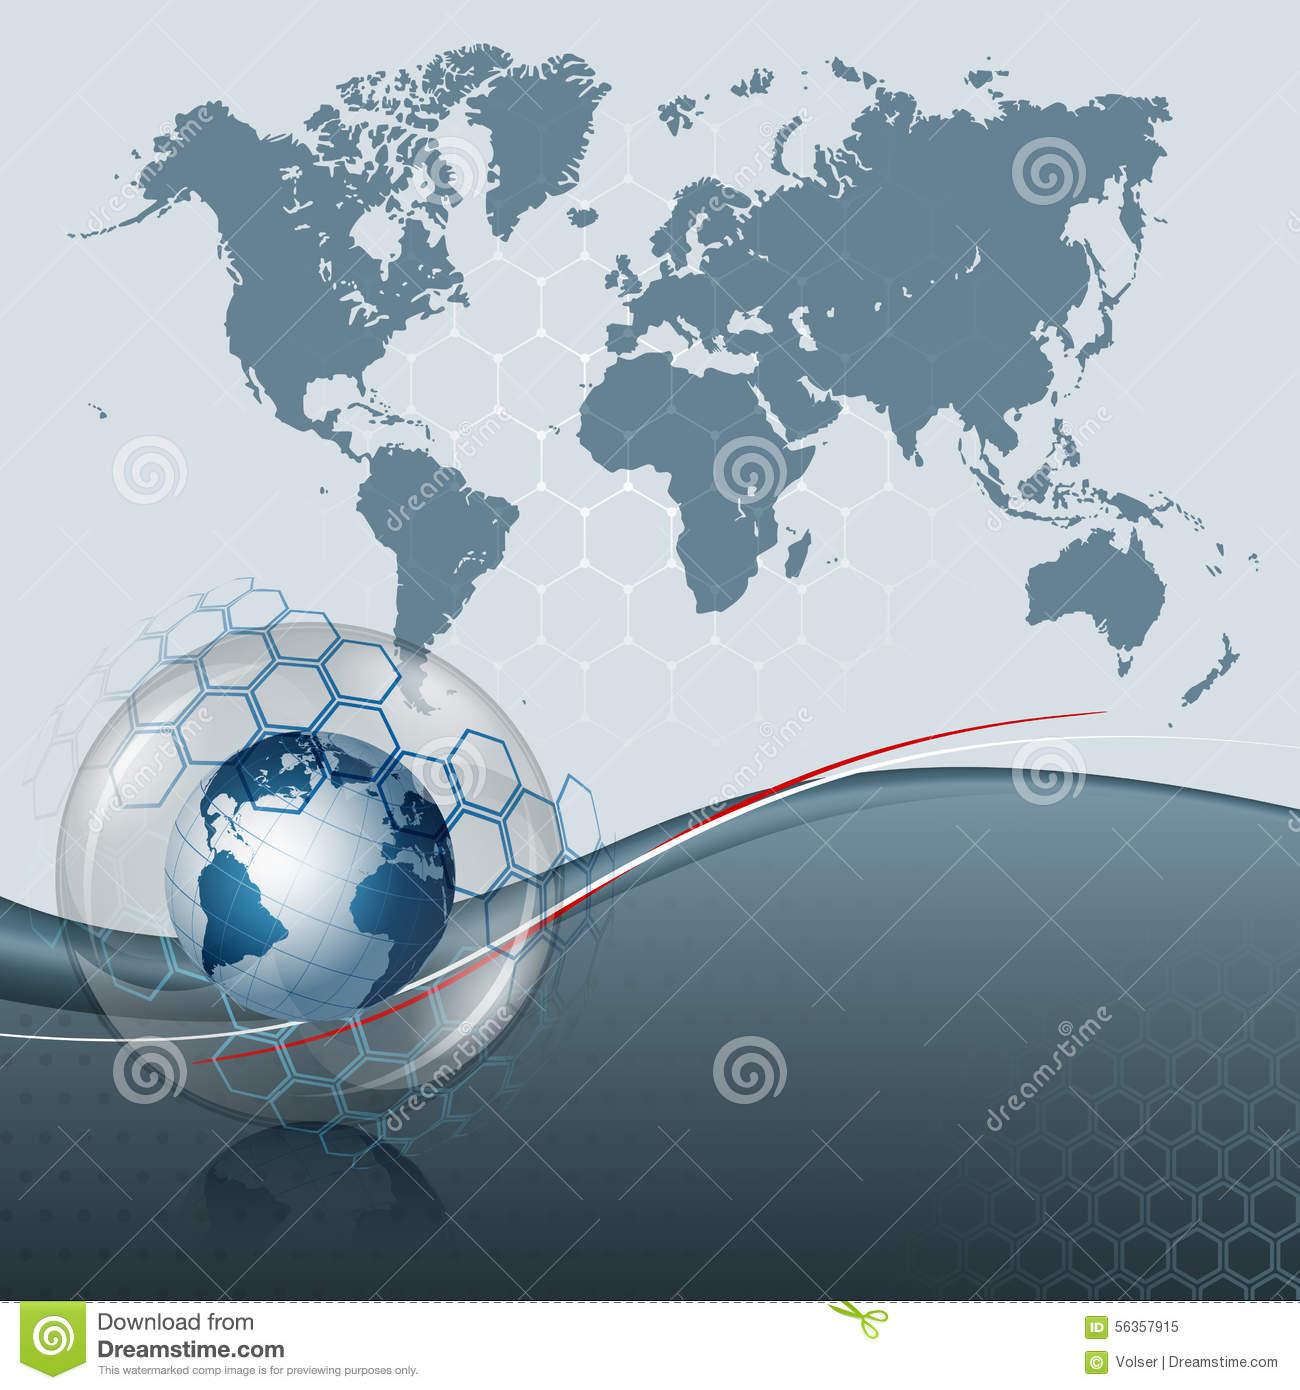 World Map Download For Computer. Abstract computer graphic World map and Earth globe inside sphere of glass Computer Graphic Map And Globe Inside Sphere